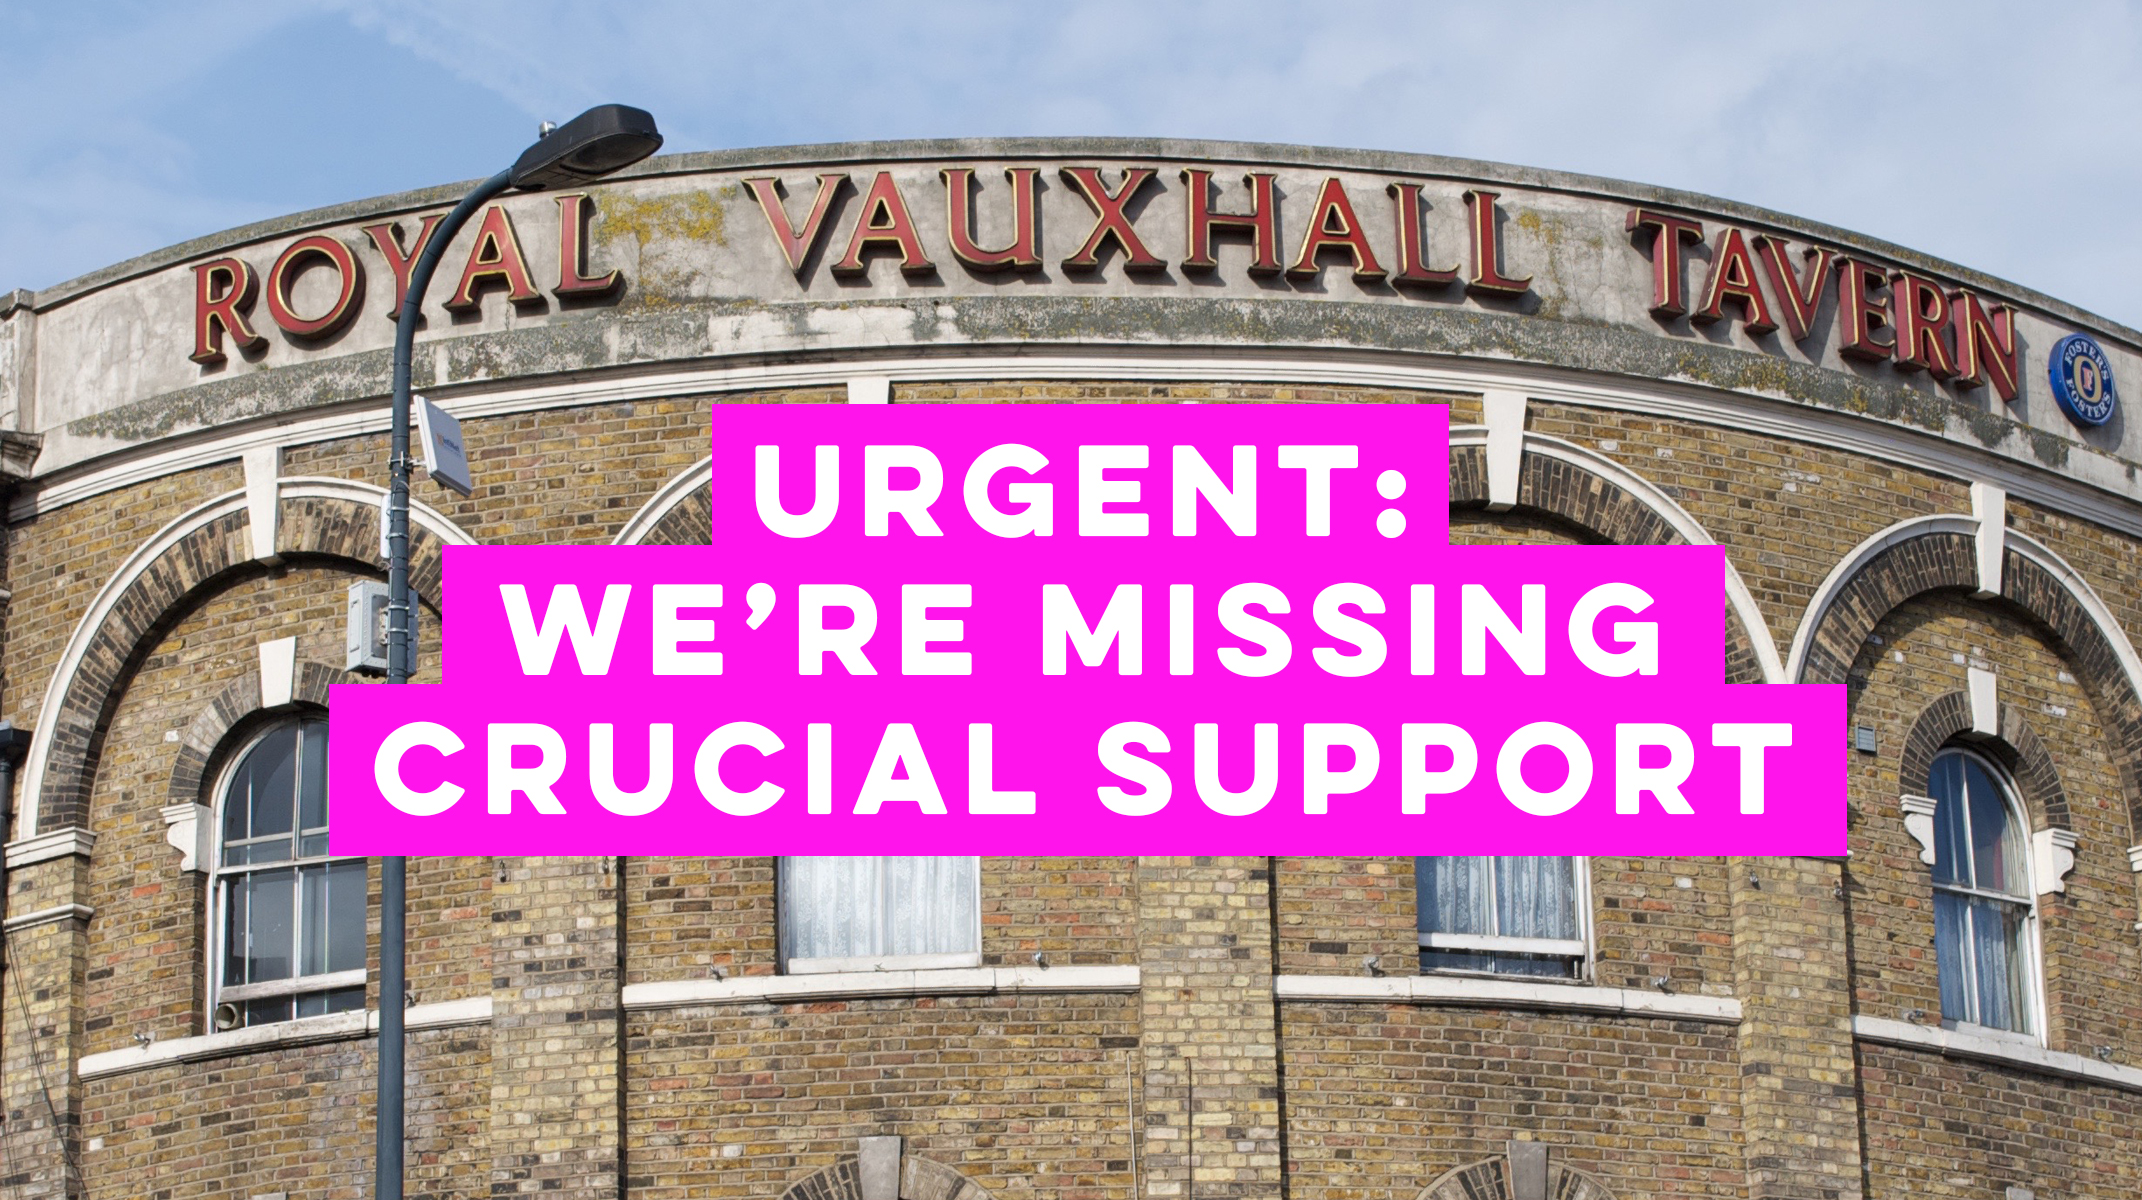 Urgent: we're missing crucial support